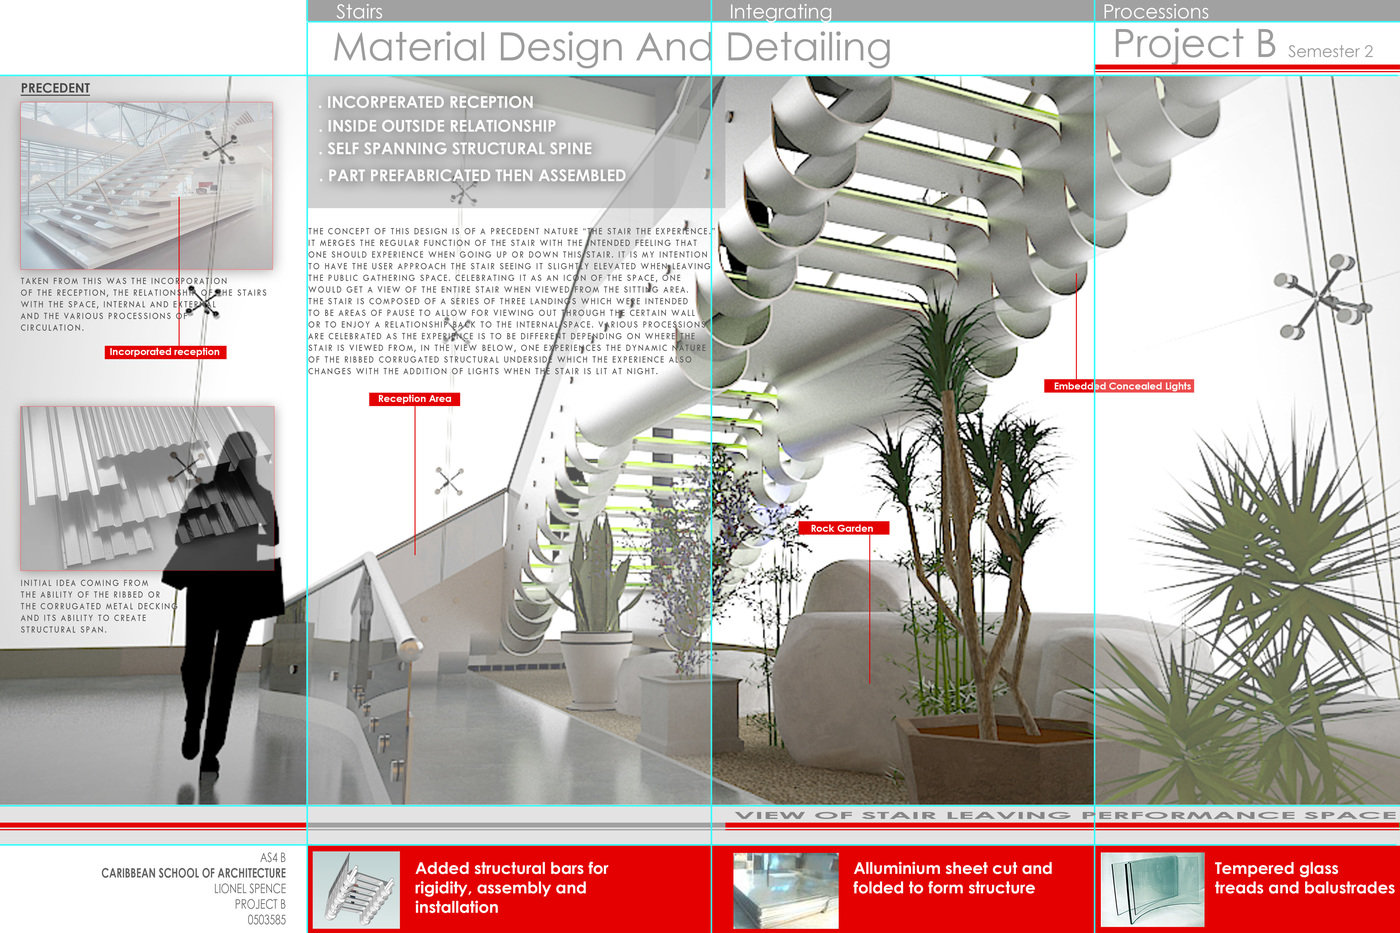 Stairs, Materials And Detailing Sheet # 1   We Were Give A Choice Of A  Major Material In This Case Aluminum To Design A Stair For A Civic Space. A  Virtual ...